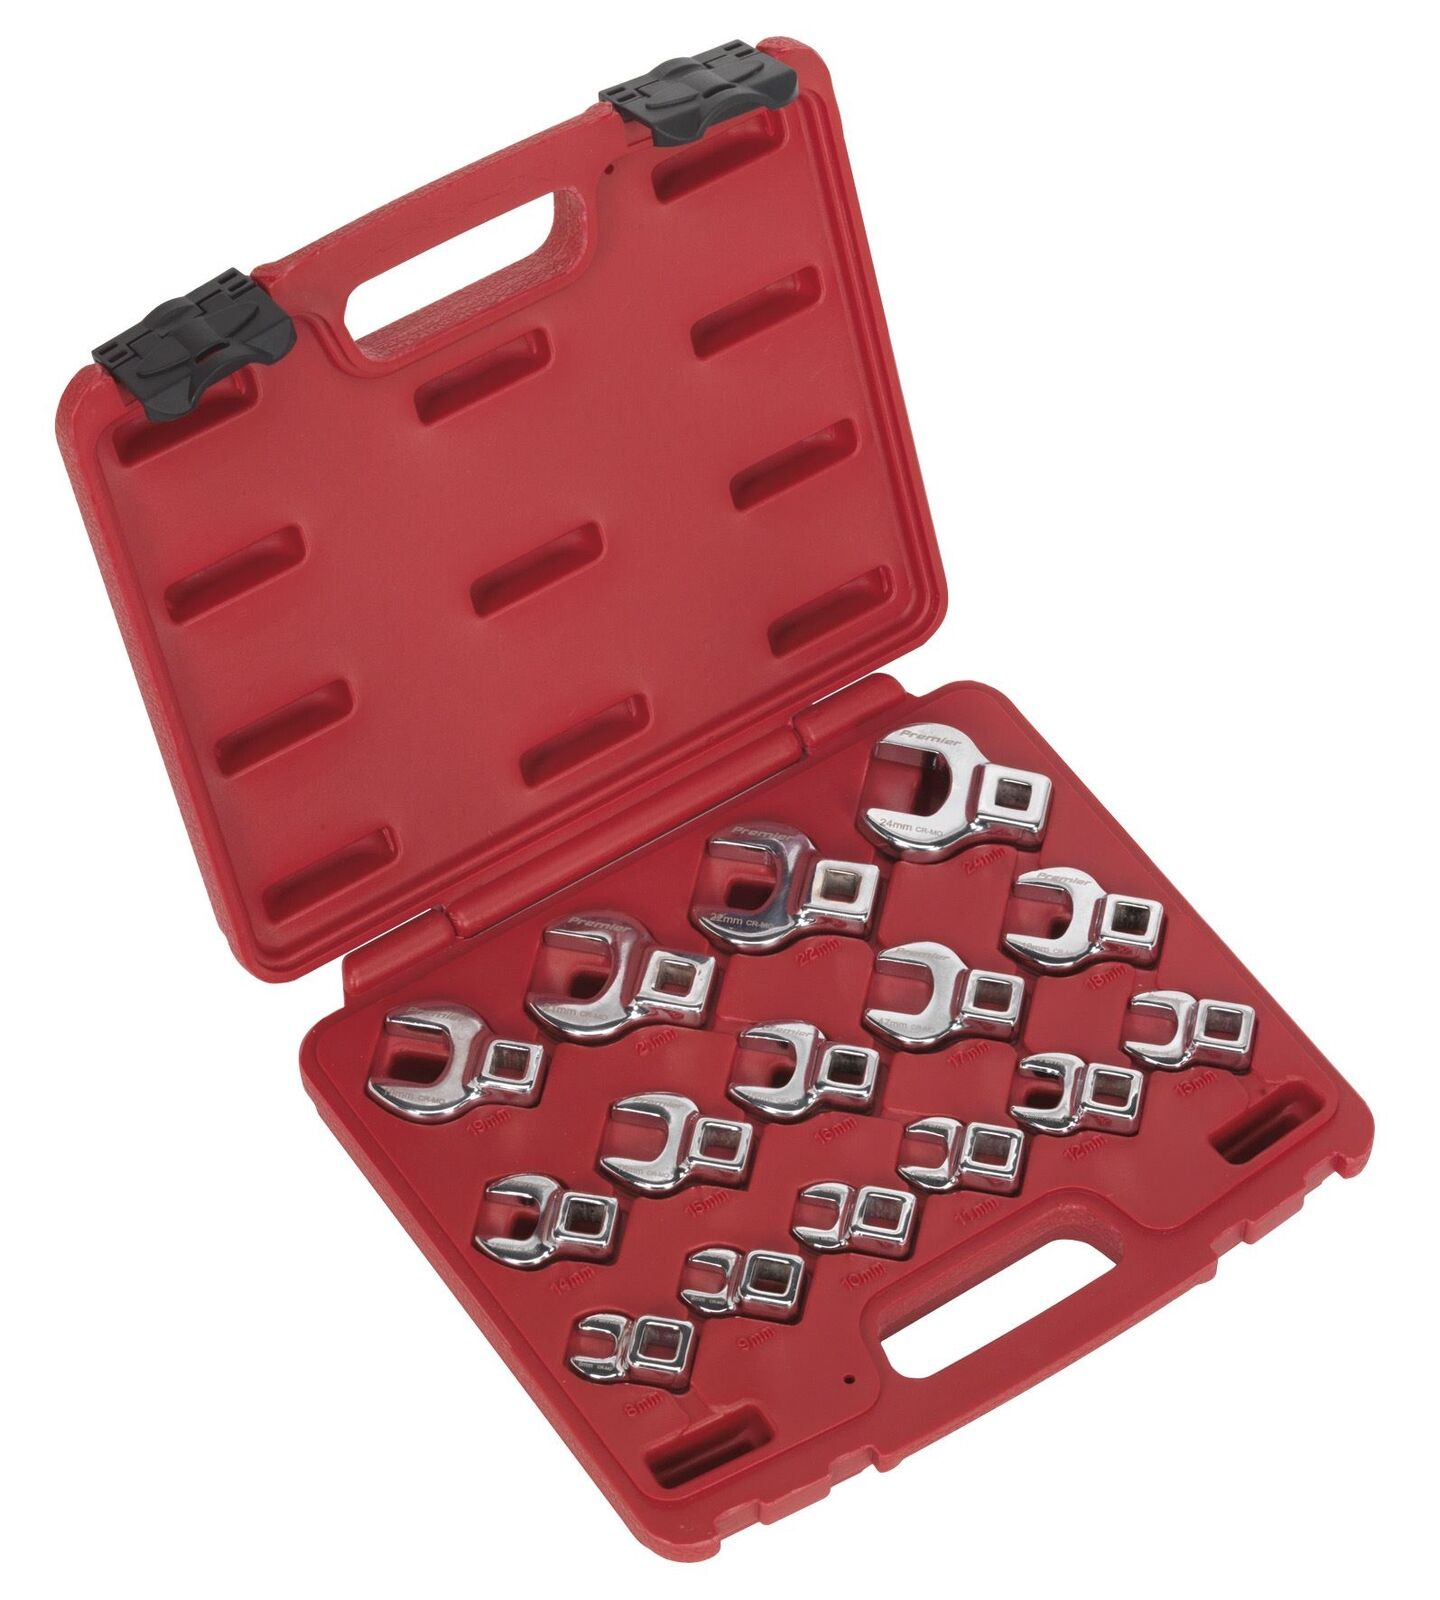 Sealey AK59891 Crow's Foot Open End Spanner Set 15pc 3 8 Sq Drive Metric